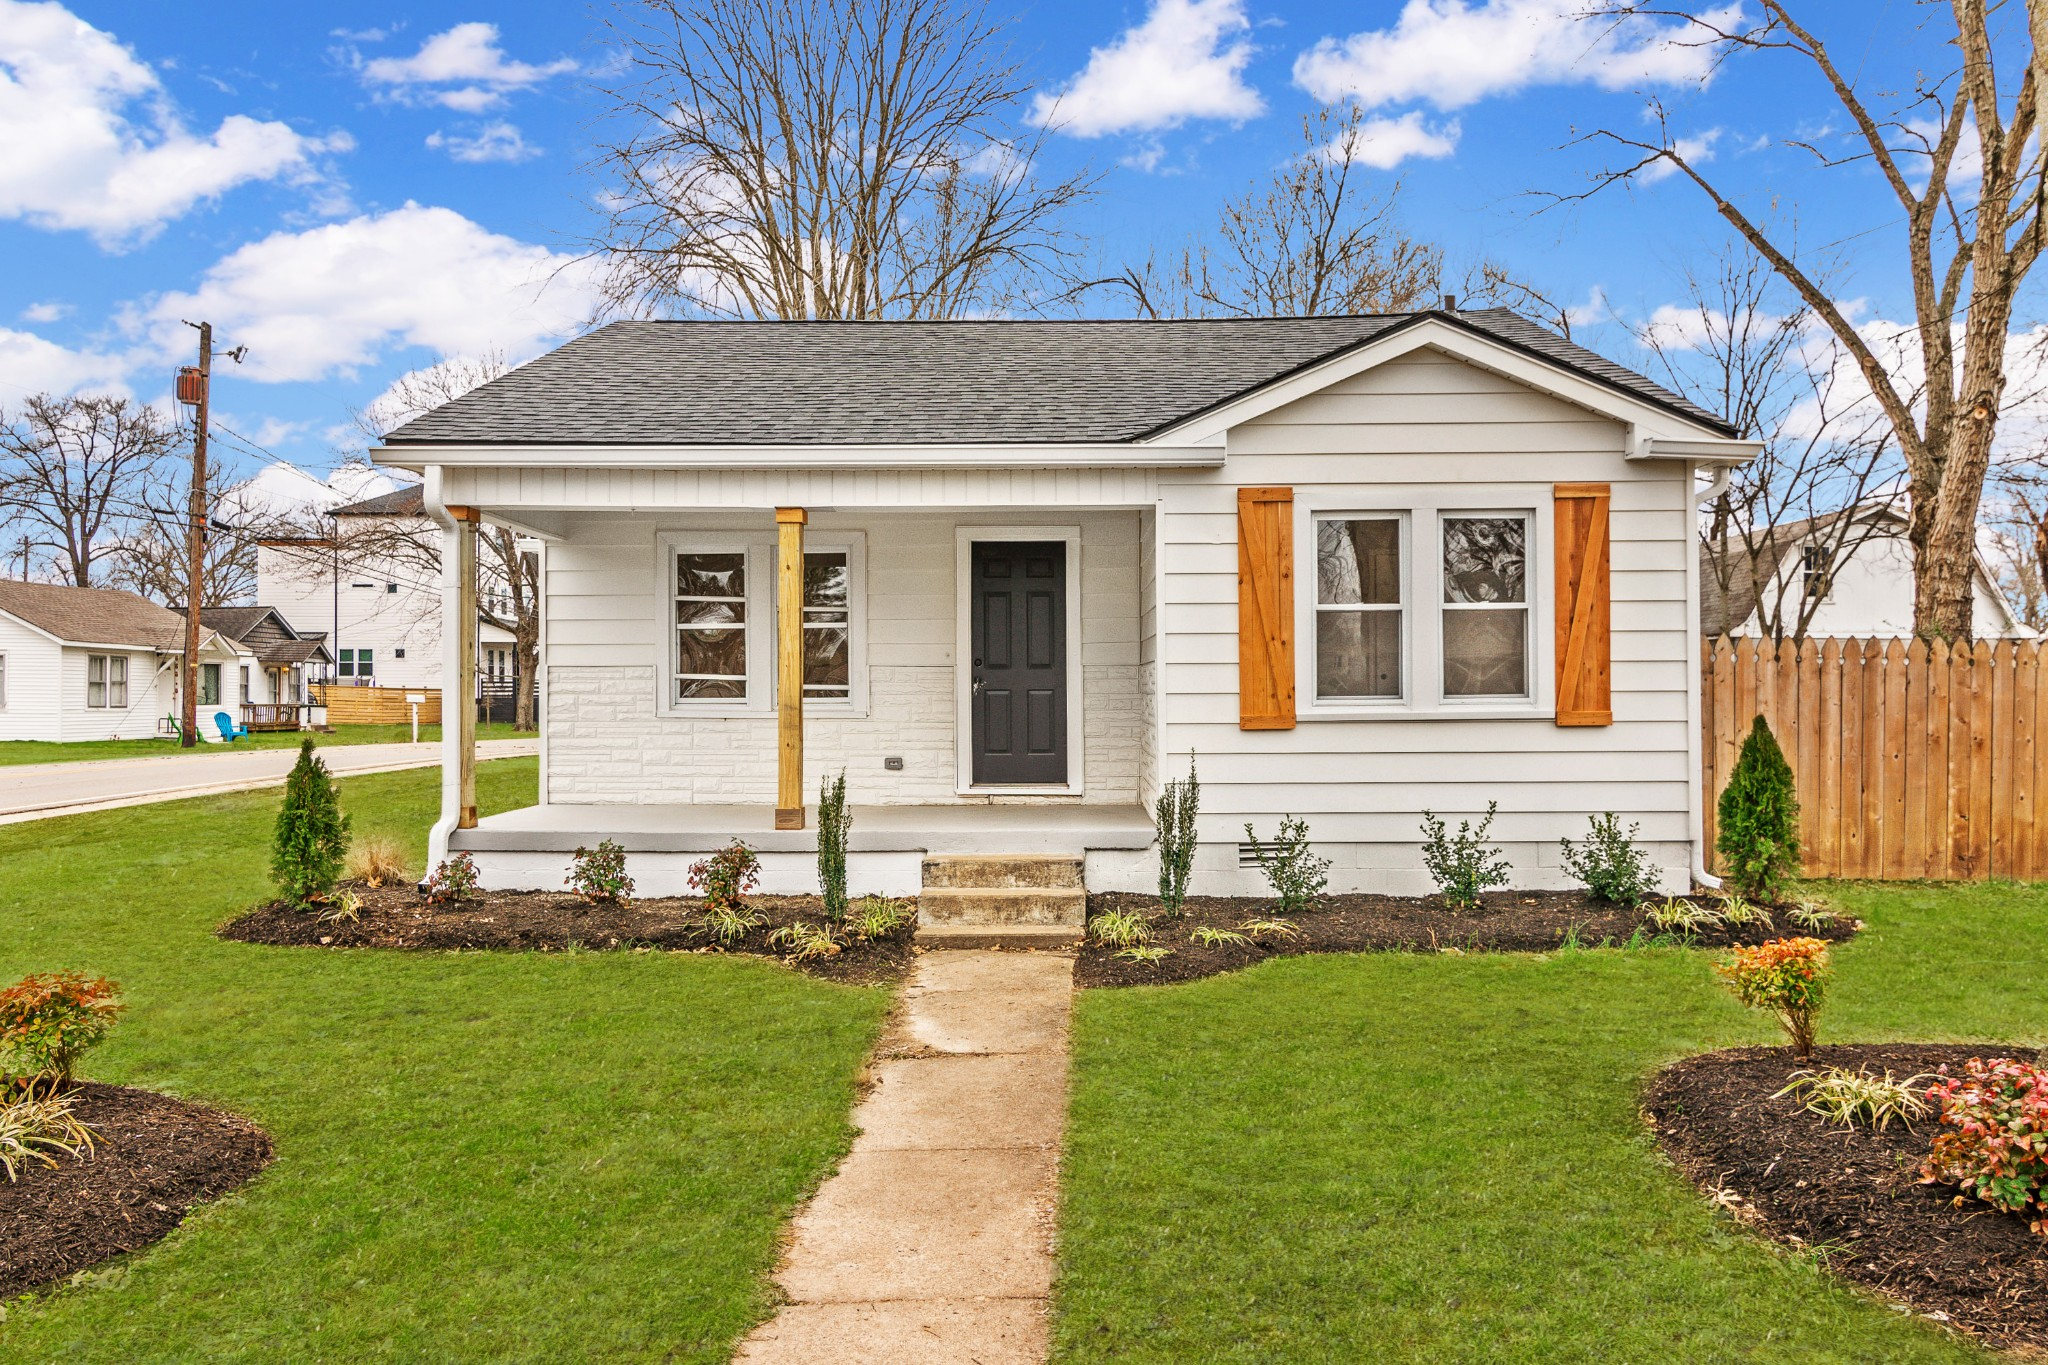 312 28th St, Old Hickory, TN 37138 - Old Hickory, TN real estate listing